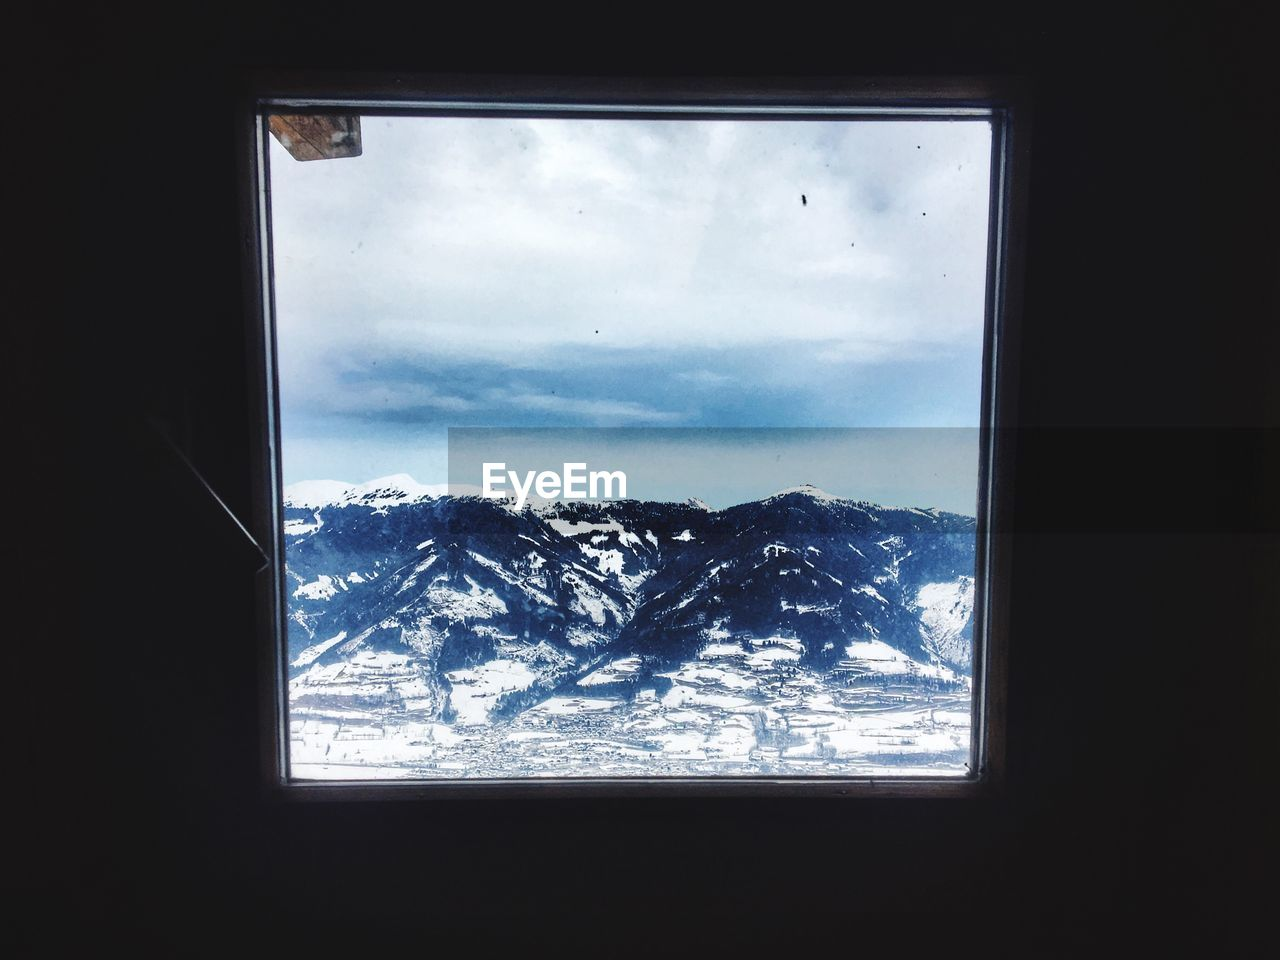 window, mountain, snow, winter, sky, weather, nature, indoors, no people, day, cloud - sky, cold temperature, beauty in nature, scenics, landscape, tree, close-up